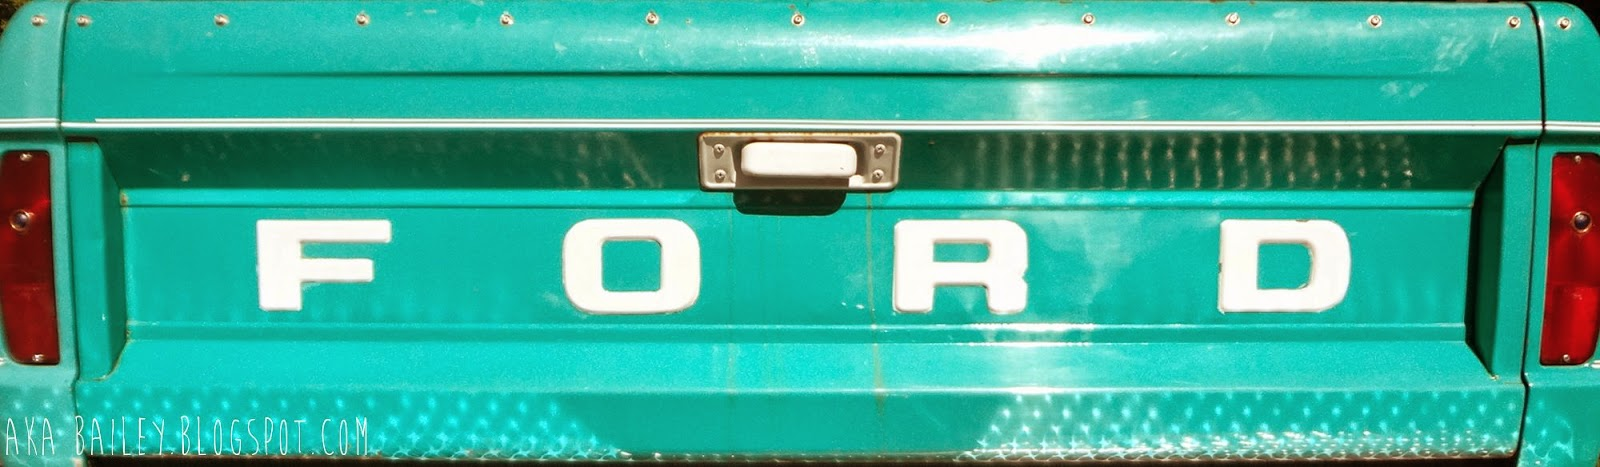 Tailgate of old turquoise Ford truck